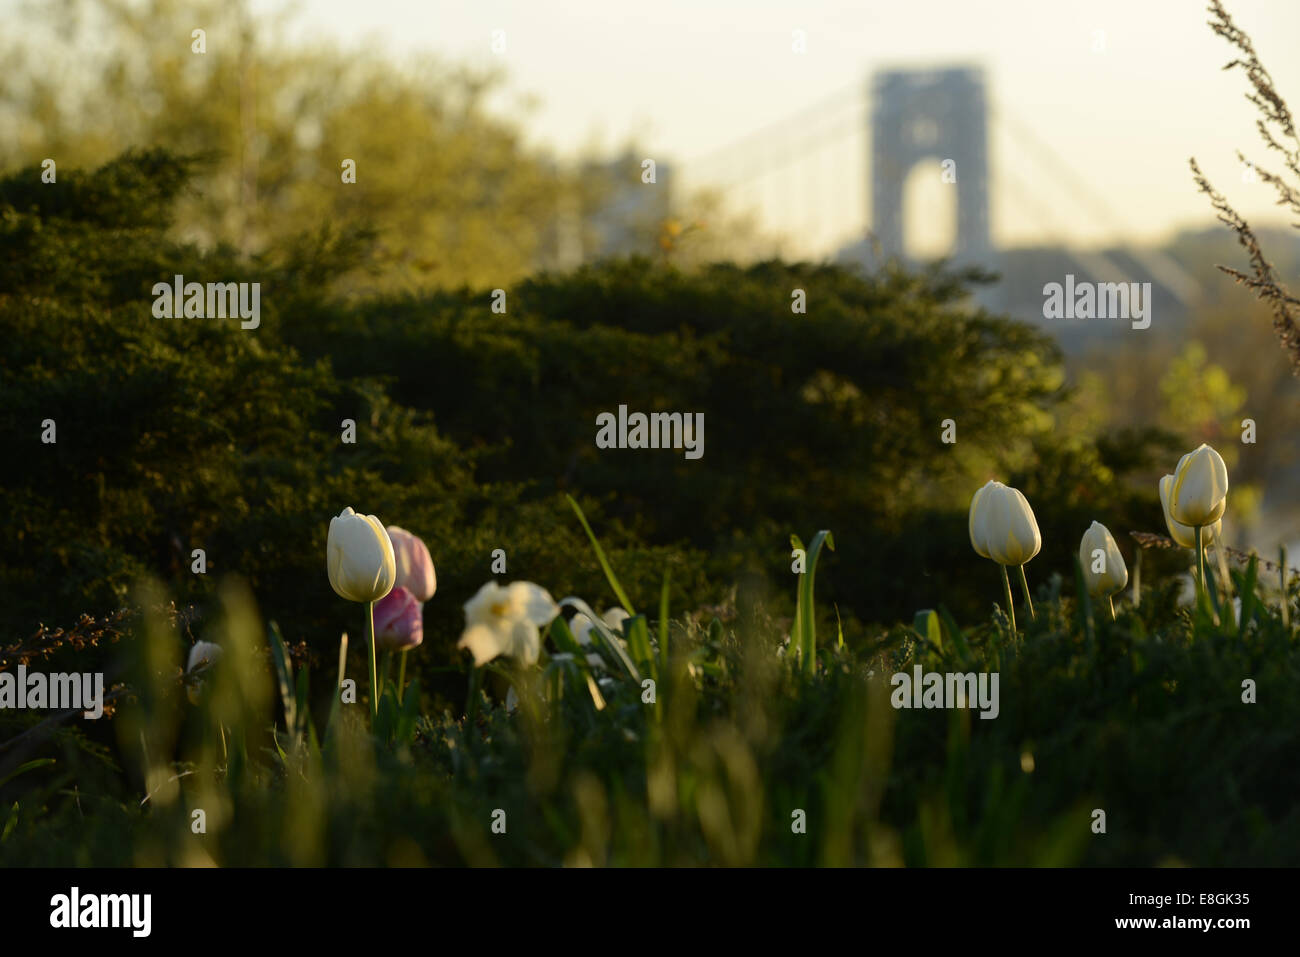 USA, l'État de New York, New York City, les tulipes au printemps Photo Stock